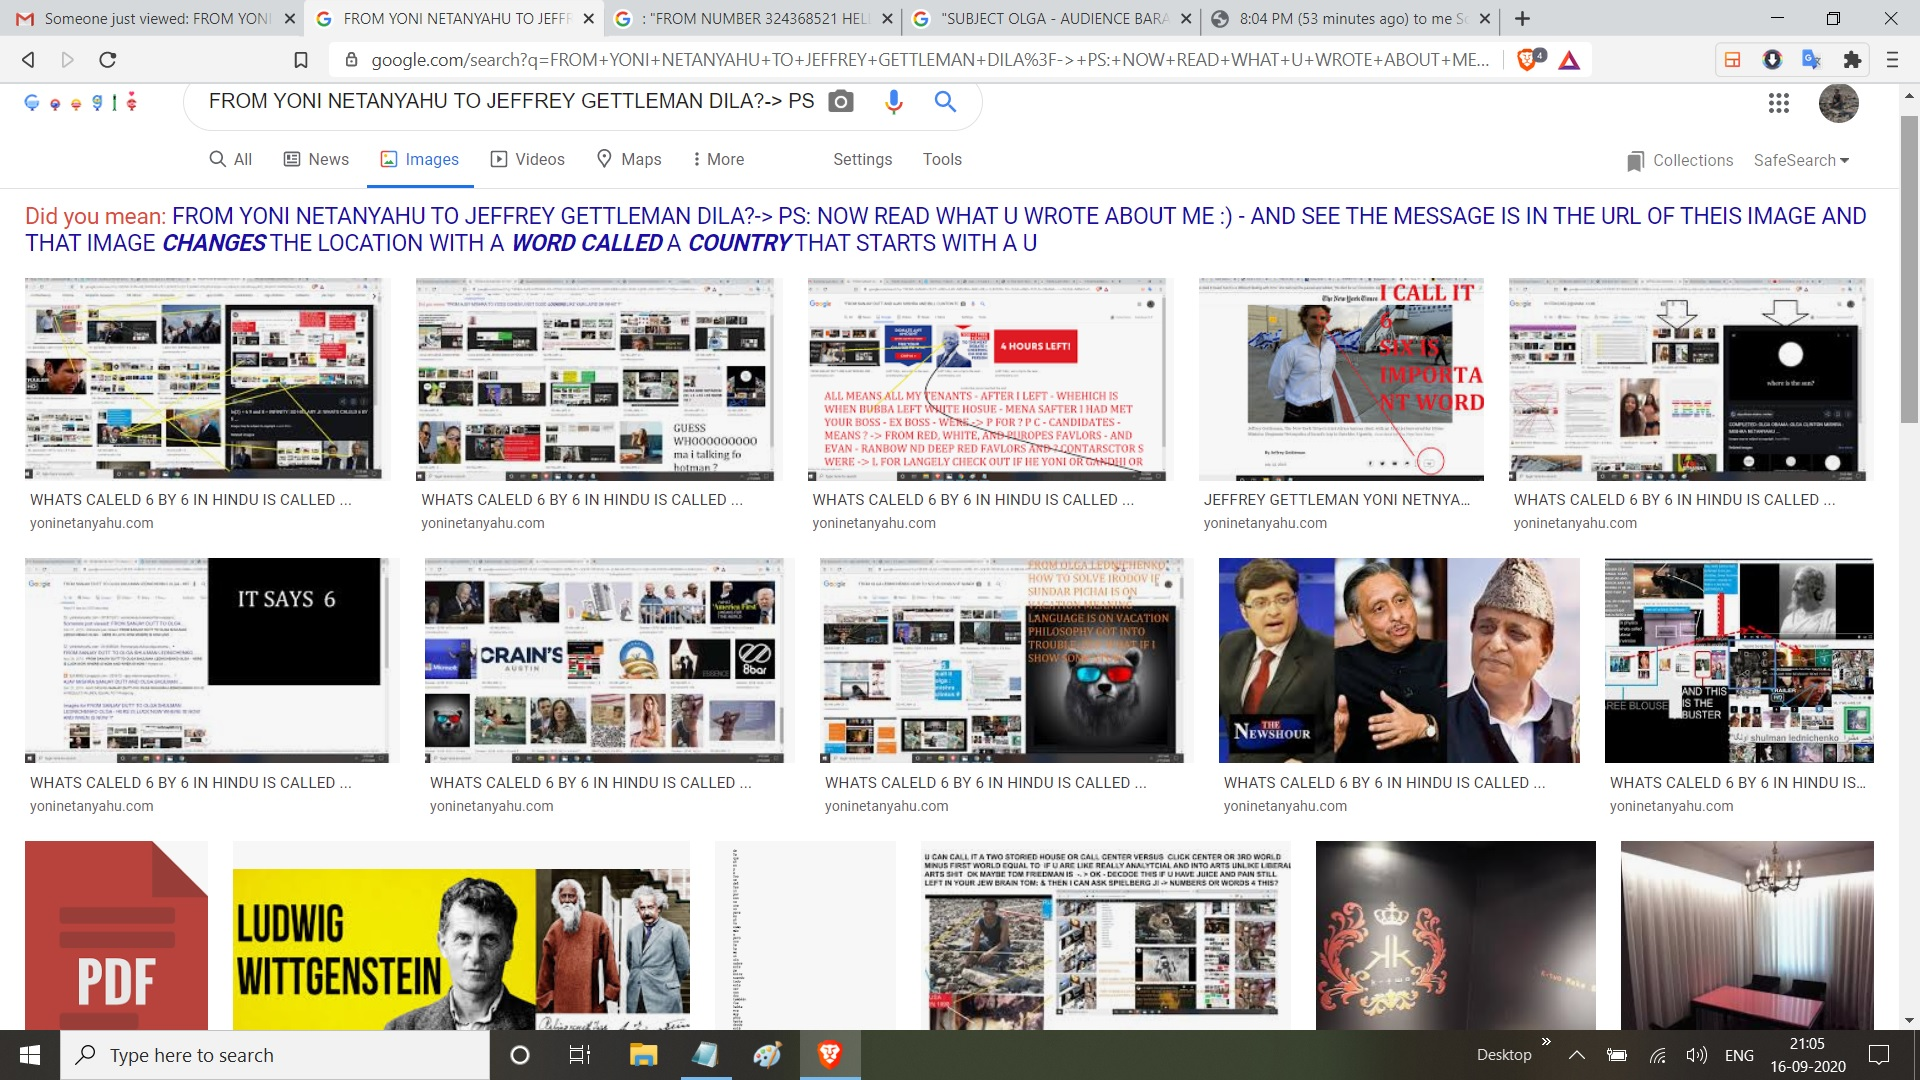 FROM YONI NETANYAHU TO JEFFREY GETTLEMAN KAK DILA  ? NOW READ WHAT U WROTE ABOUT ME- AND SEE THE MESSAGE IS IN THE URL OF THEIS IMAGE AND THAT IMAGE CHNAGES THE LOCATION WITH A WOR D CAED A COUNTTRY THAT STARTS WITH A U